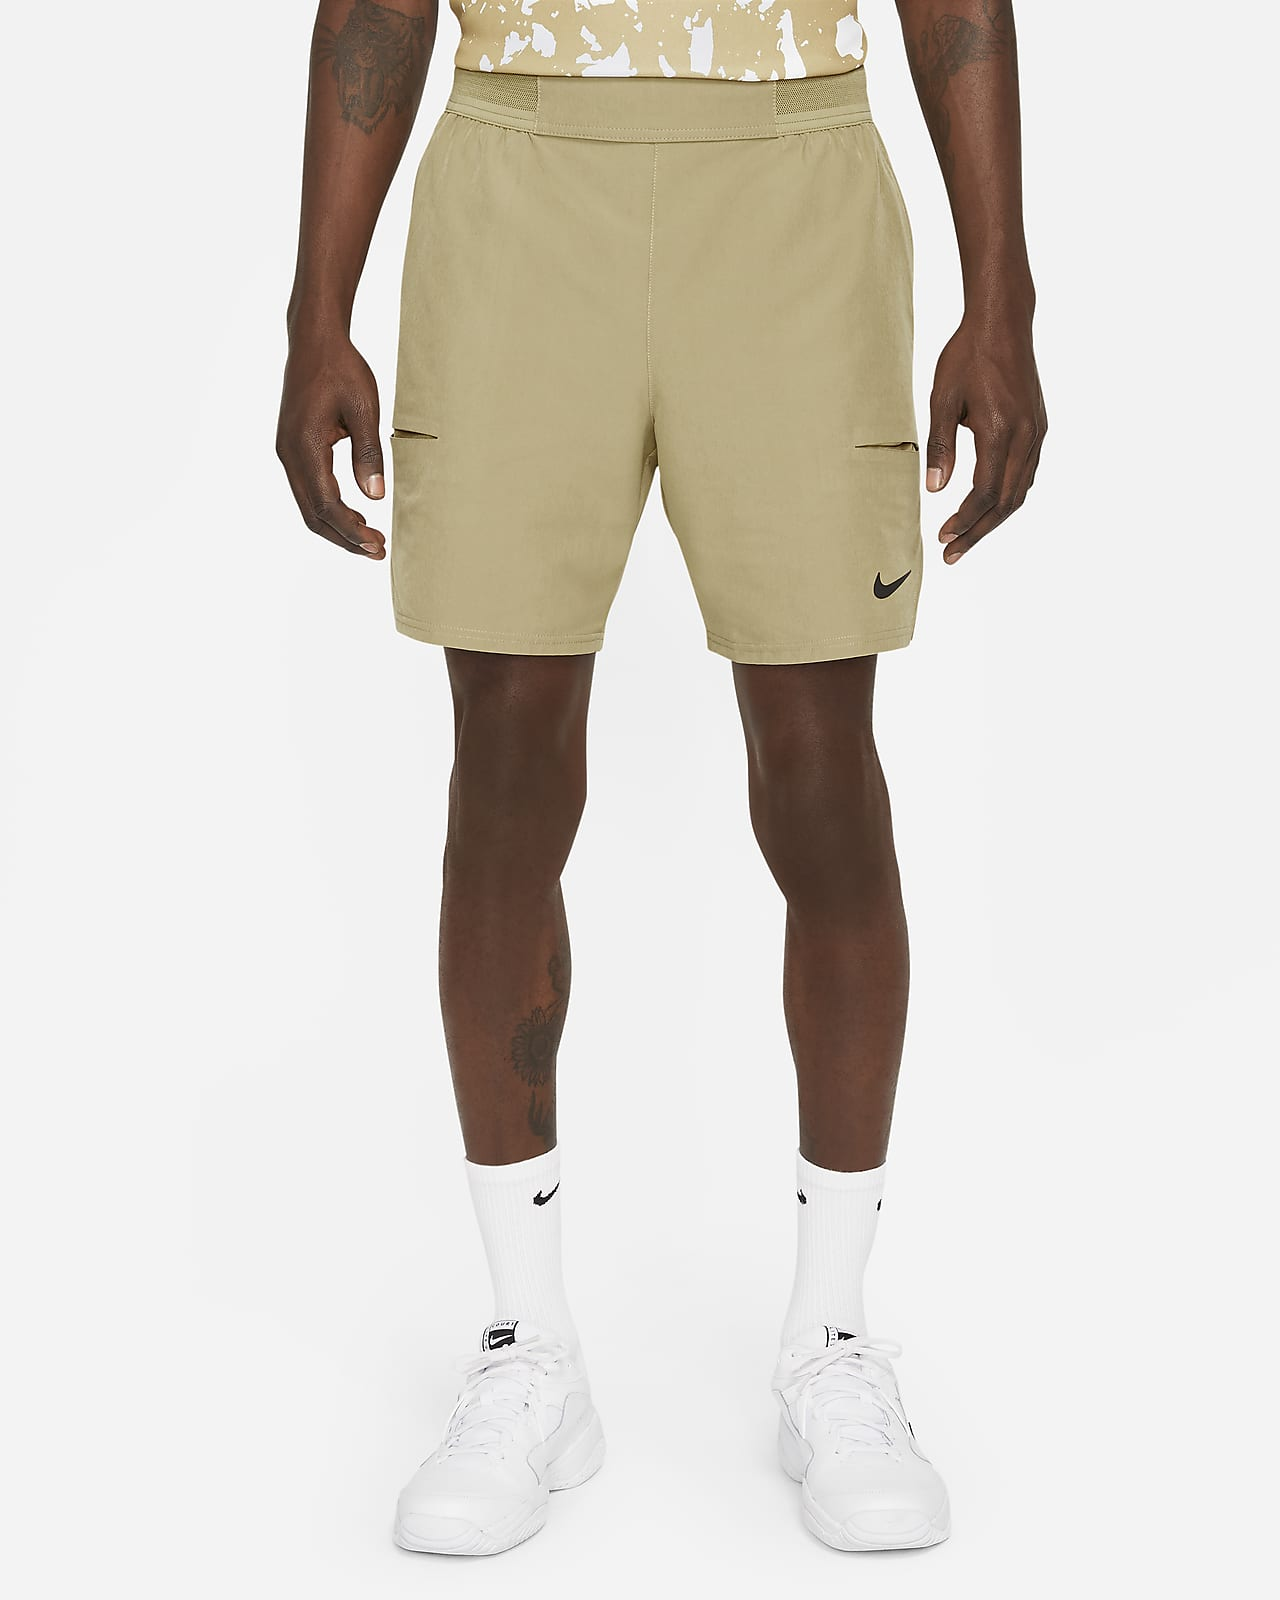 Short de tennis NikeCourt Dri-FIT Advantage 18 cm pour Homme